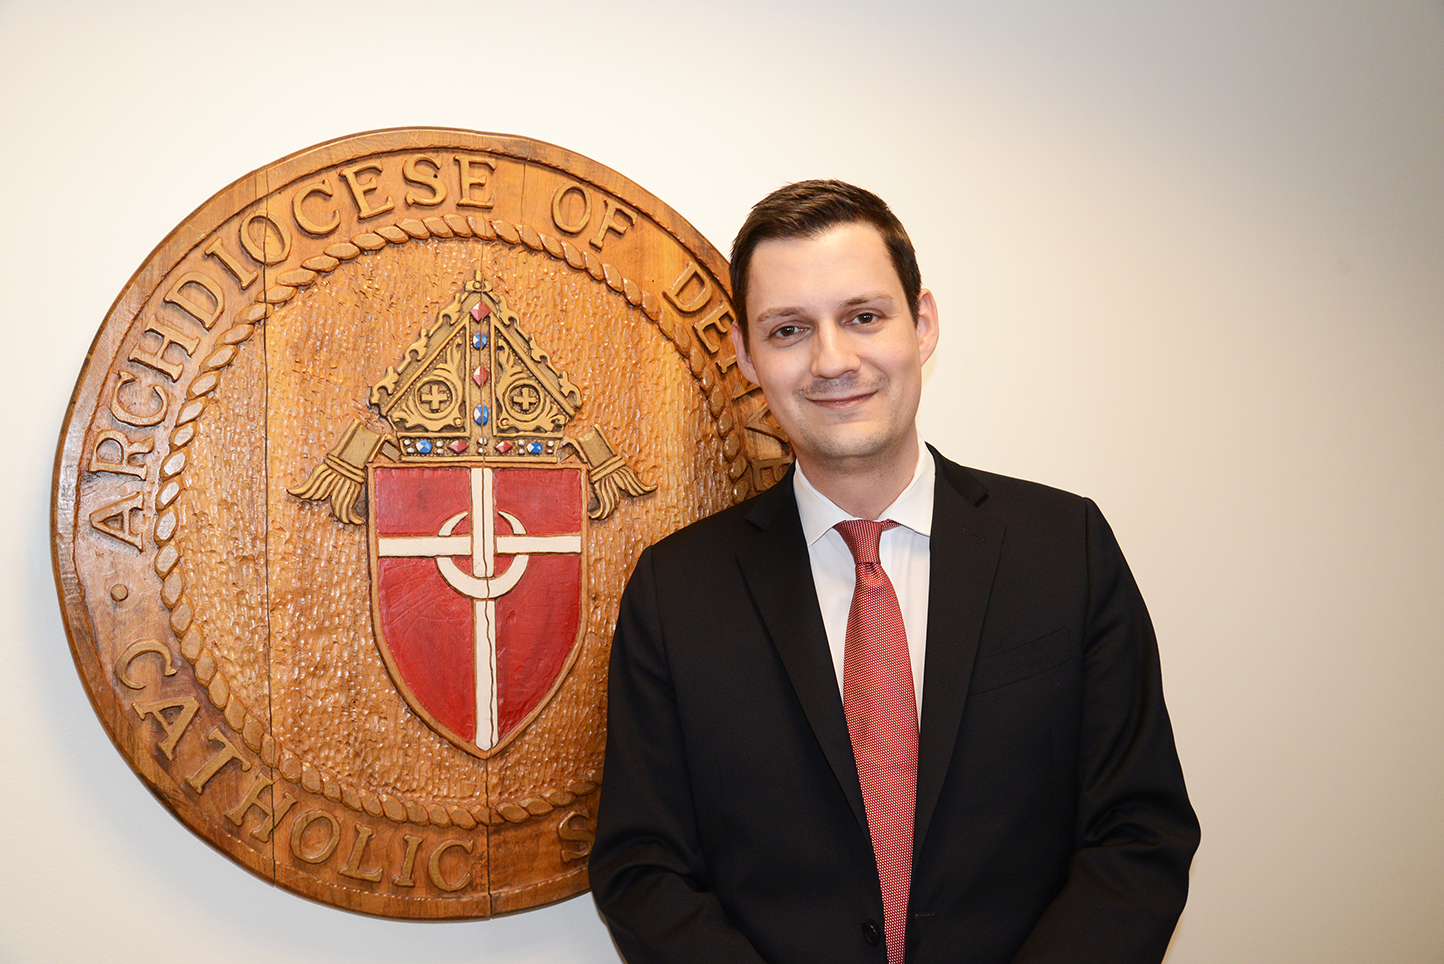 Archdiocese of Denver Announces Kevin Kijewski as New Superintendent